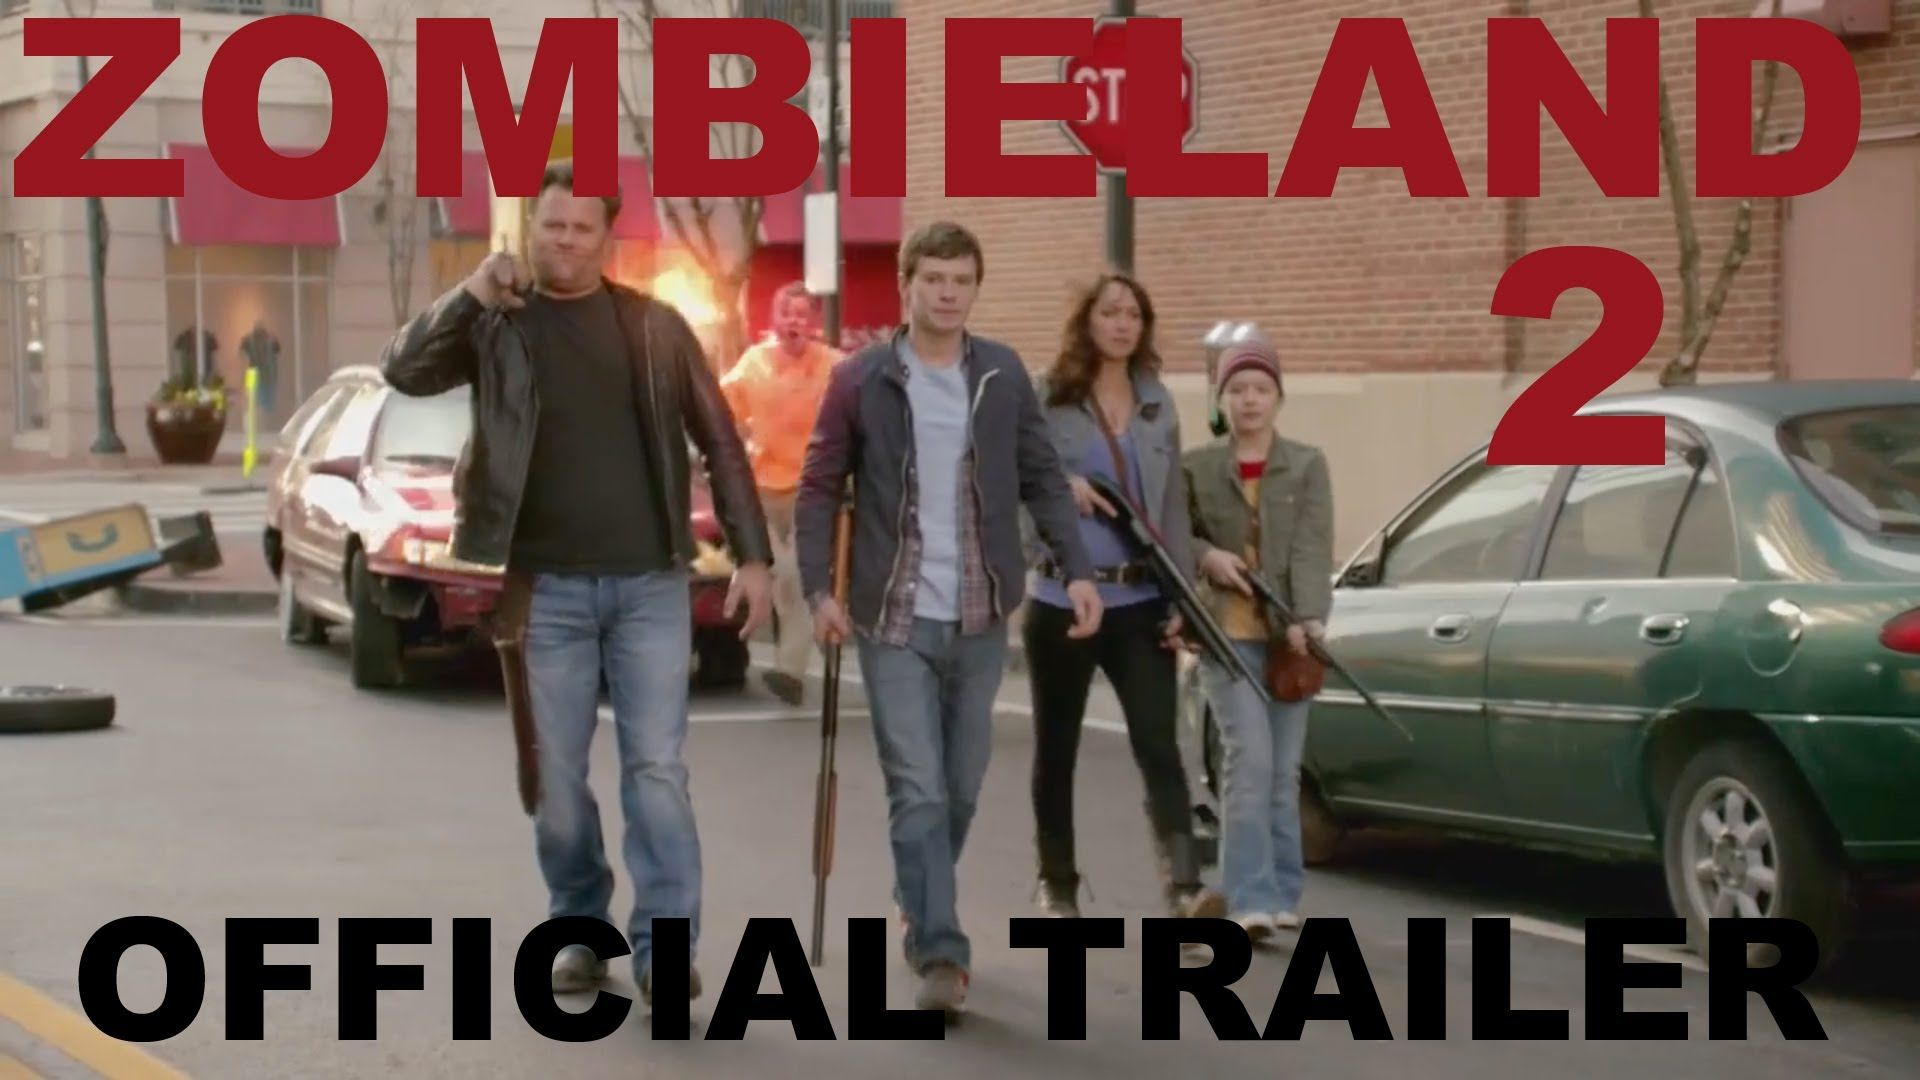 Zombieland 2 2017 [OFFICIAL TRAILER] | Films to watch | Official trailer, Zombieland 2, Zombieland